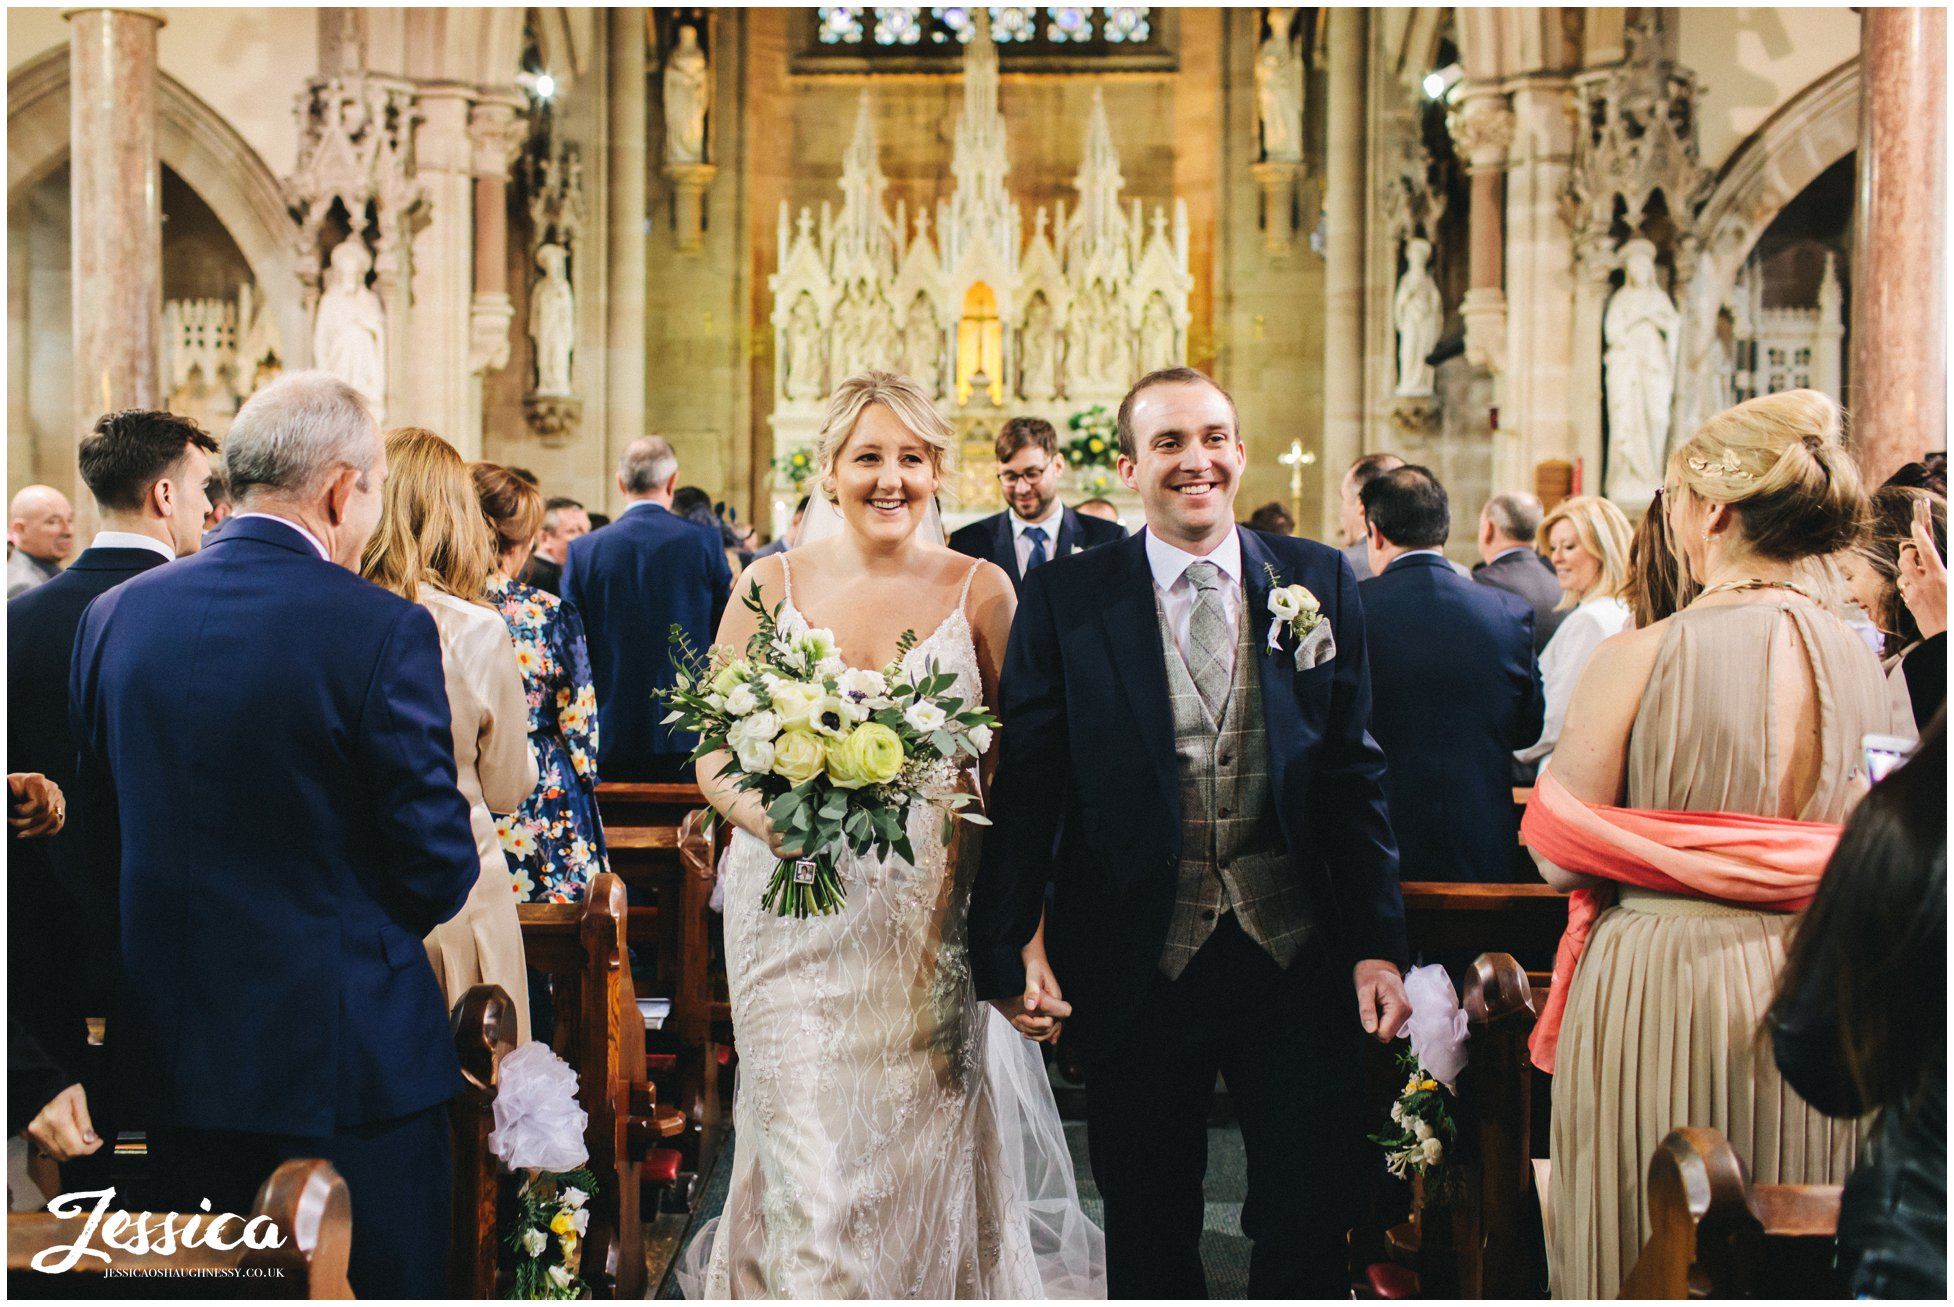 the newly wed's exit the church